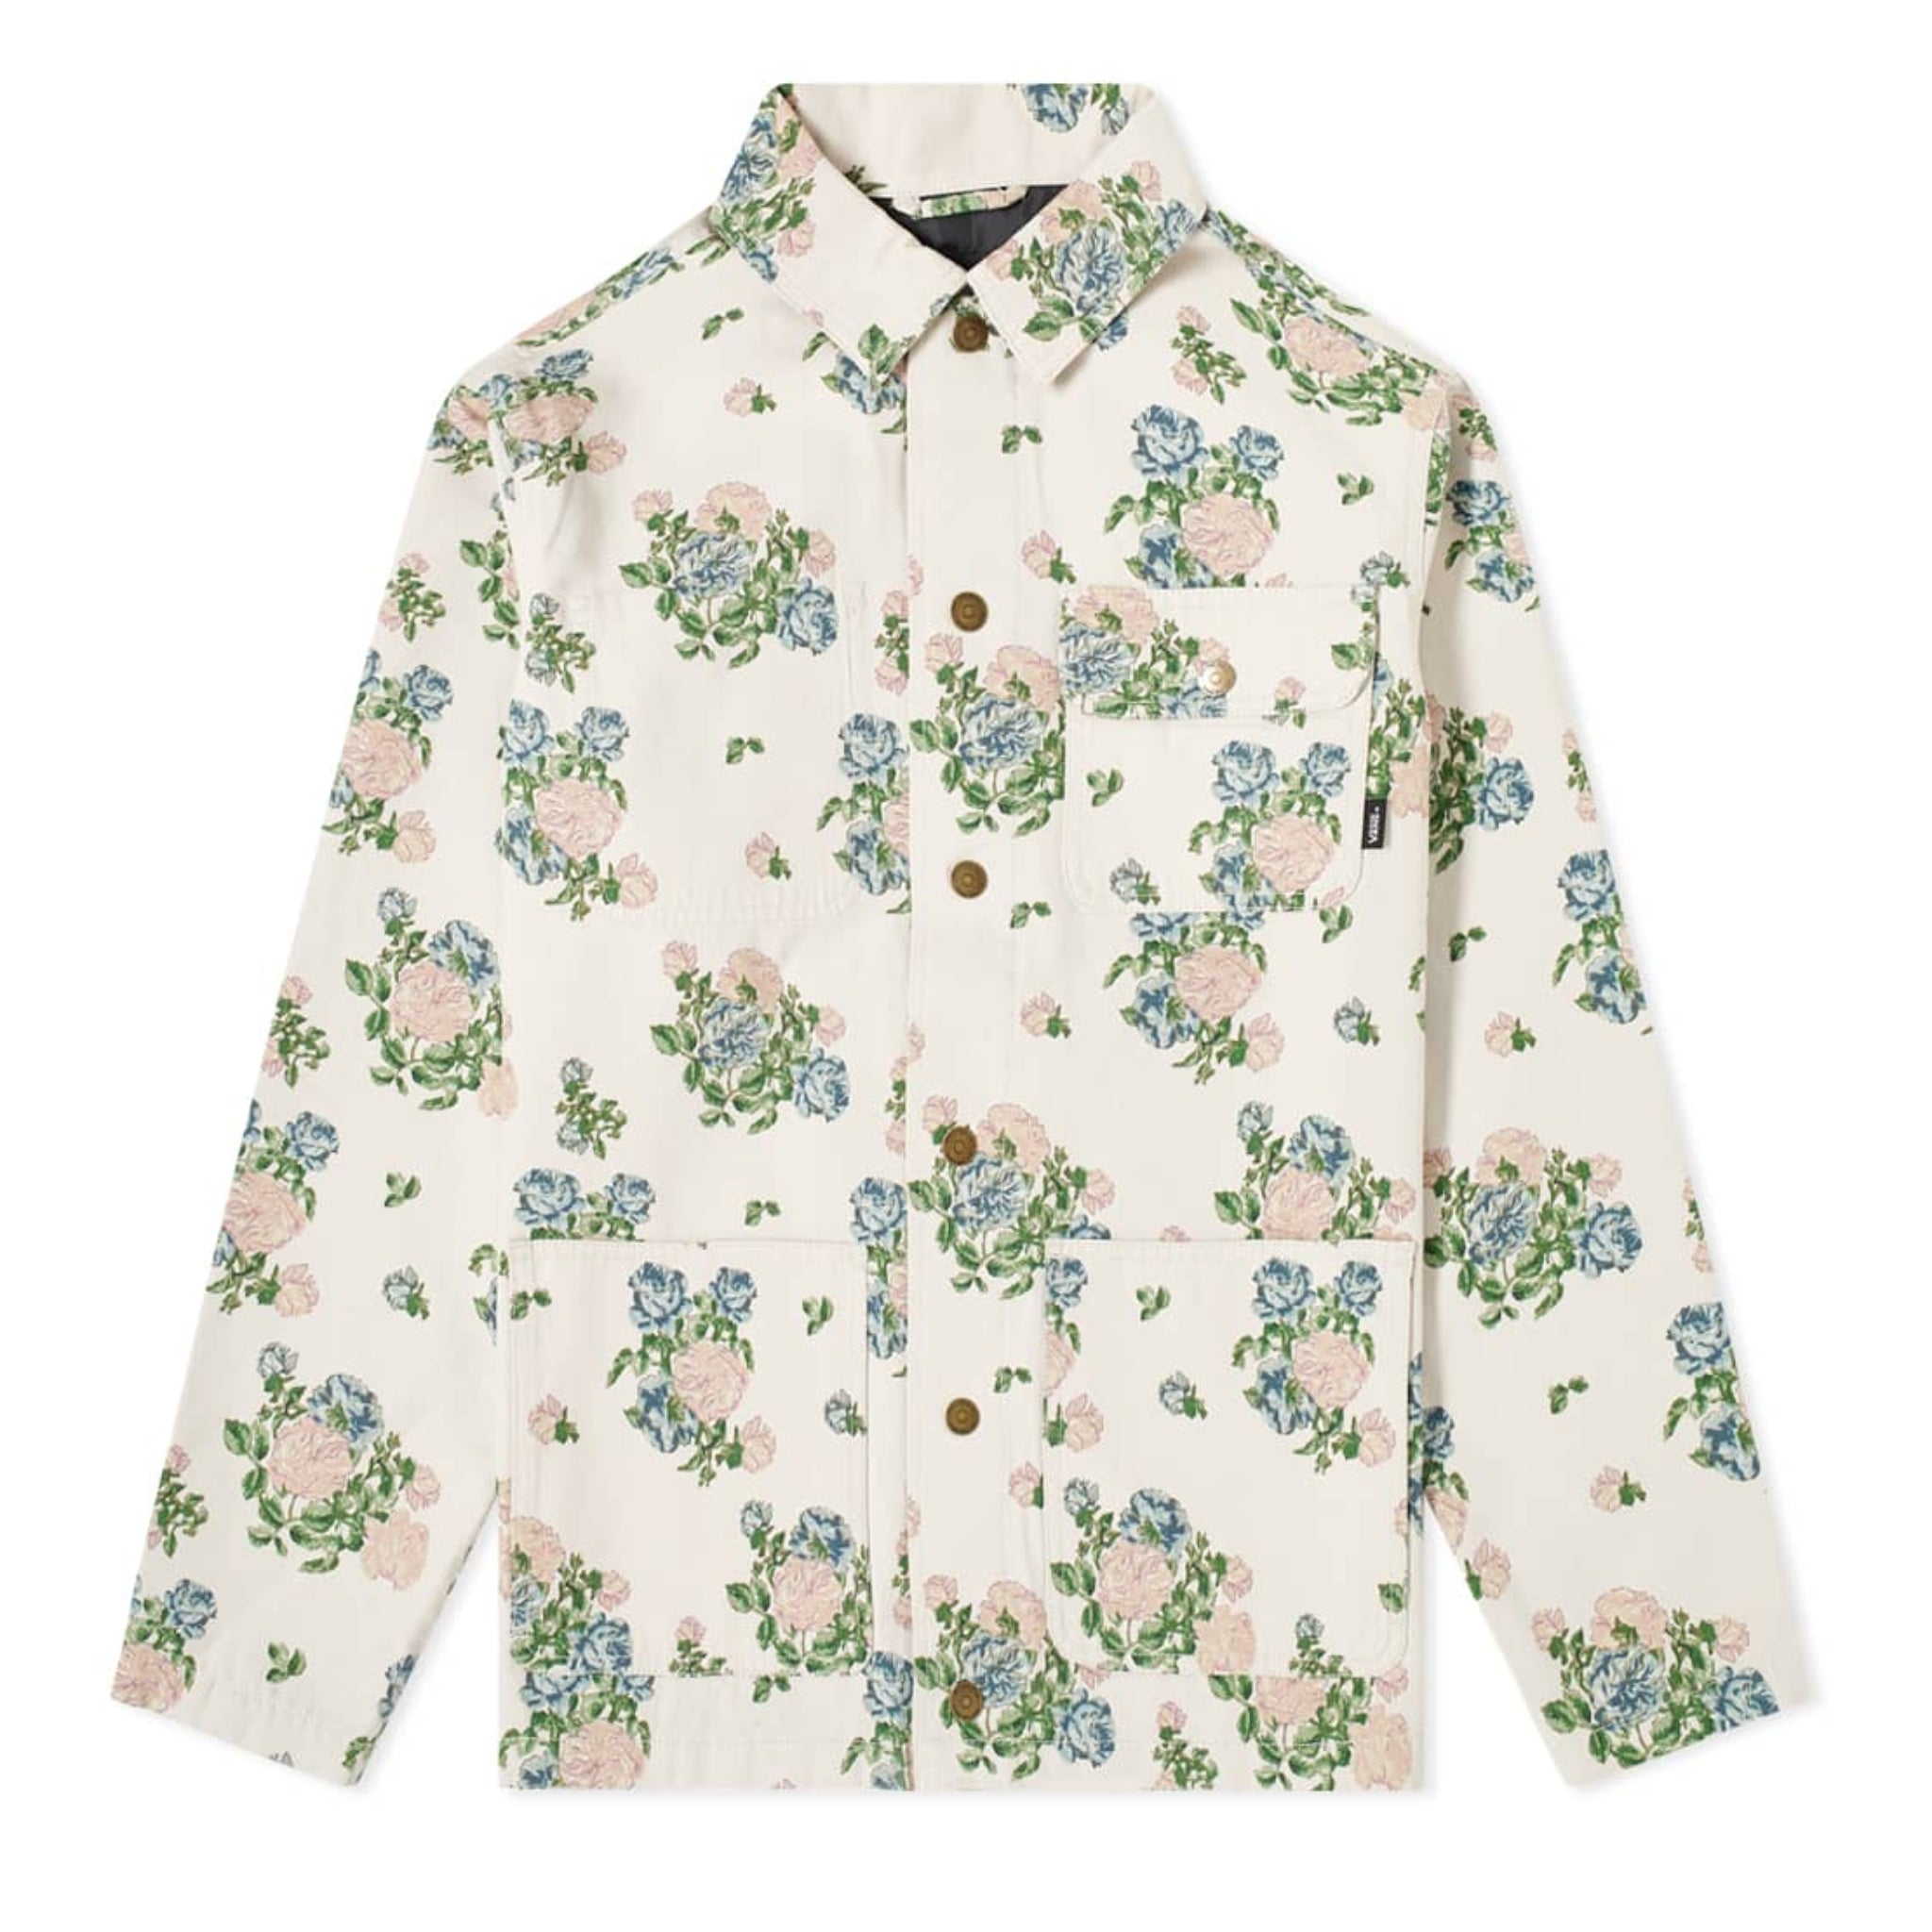 Vans Vault x Jim Goldberg Denim Chore Jacket Floral